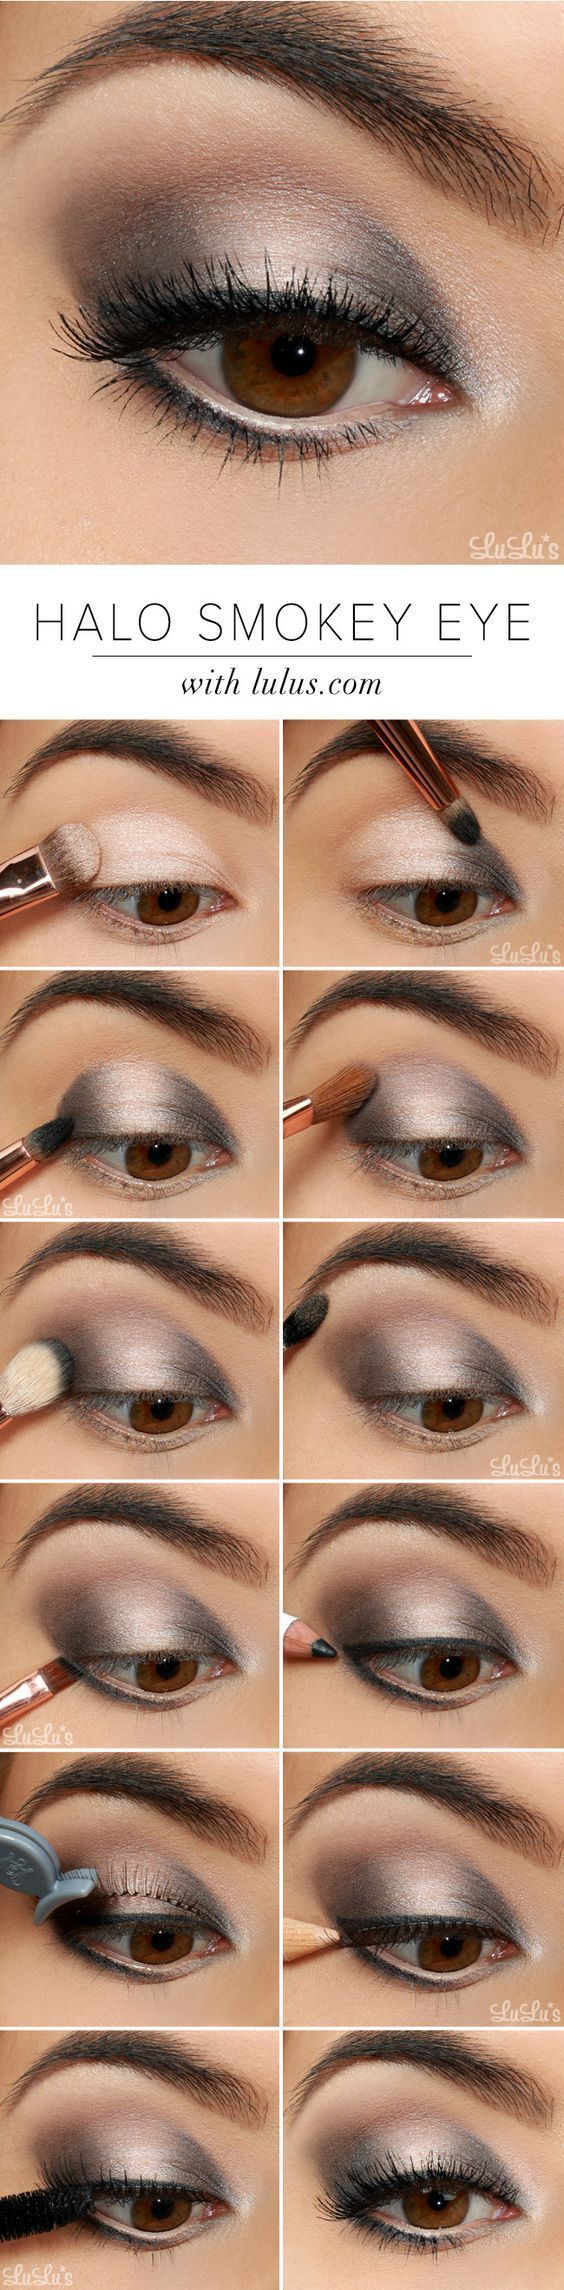 Lulus How-To: Halo Smokey Lidschatten Tutorial